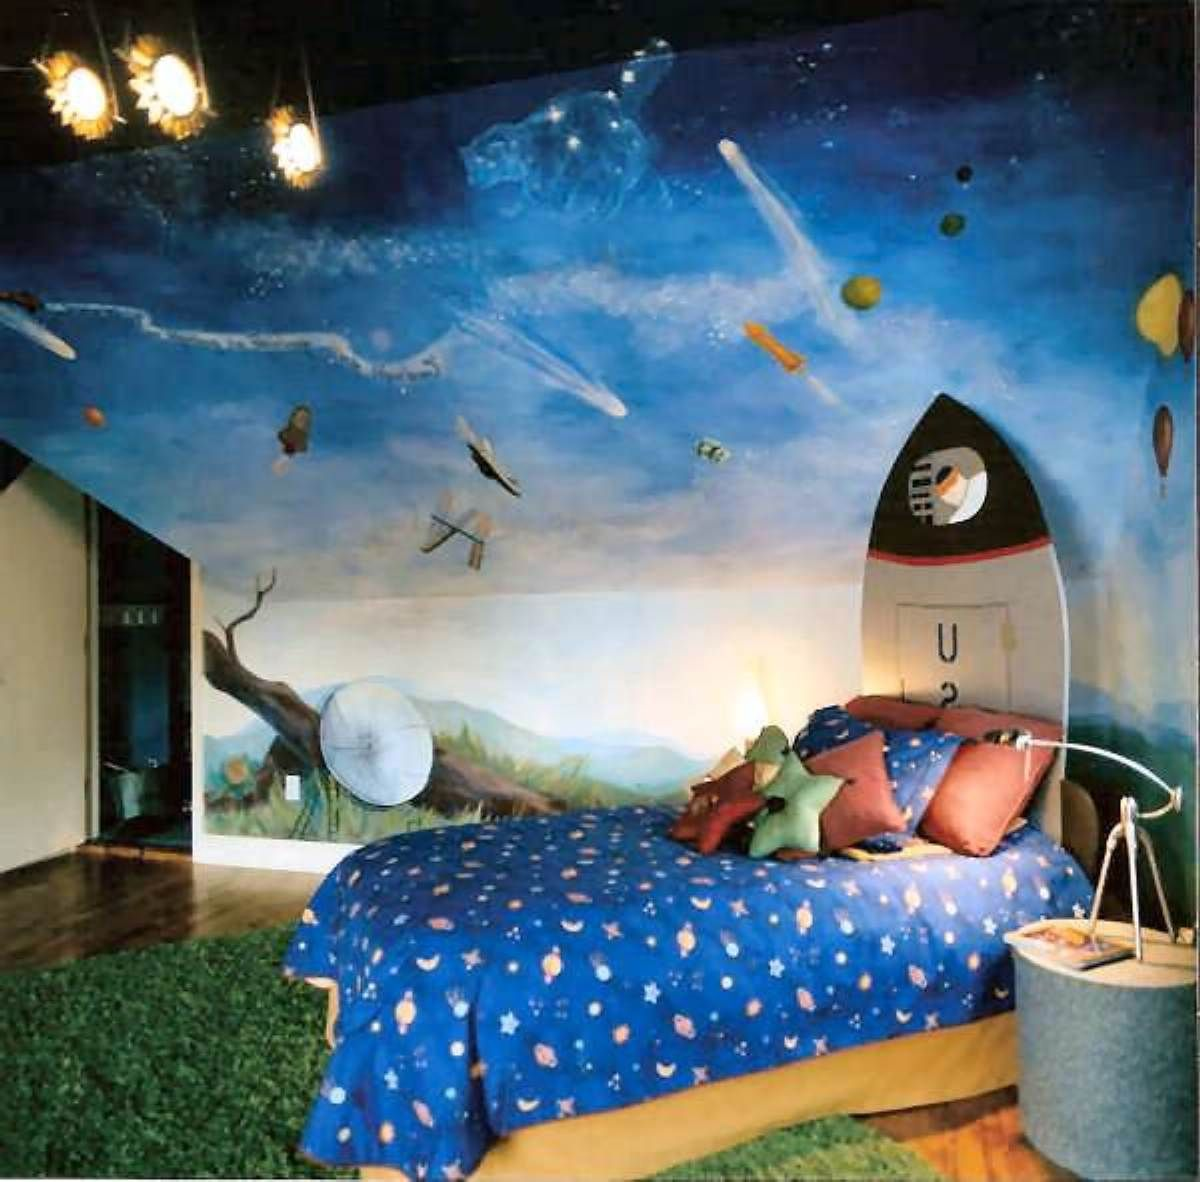 25 marvelous kids rooms ceiling designs ideas outer for Outer space bedroom design